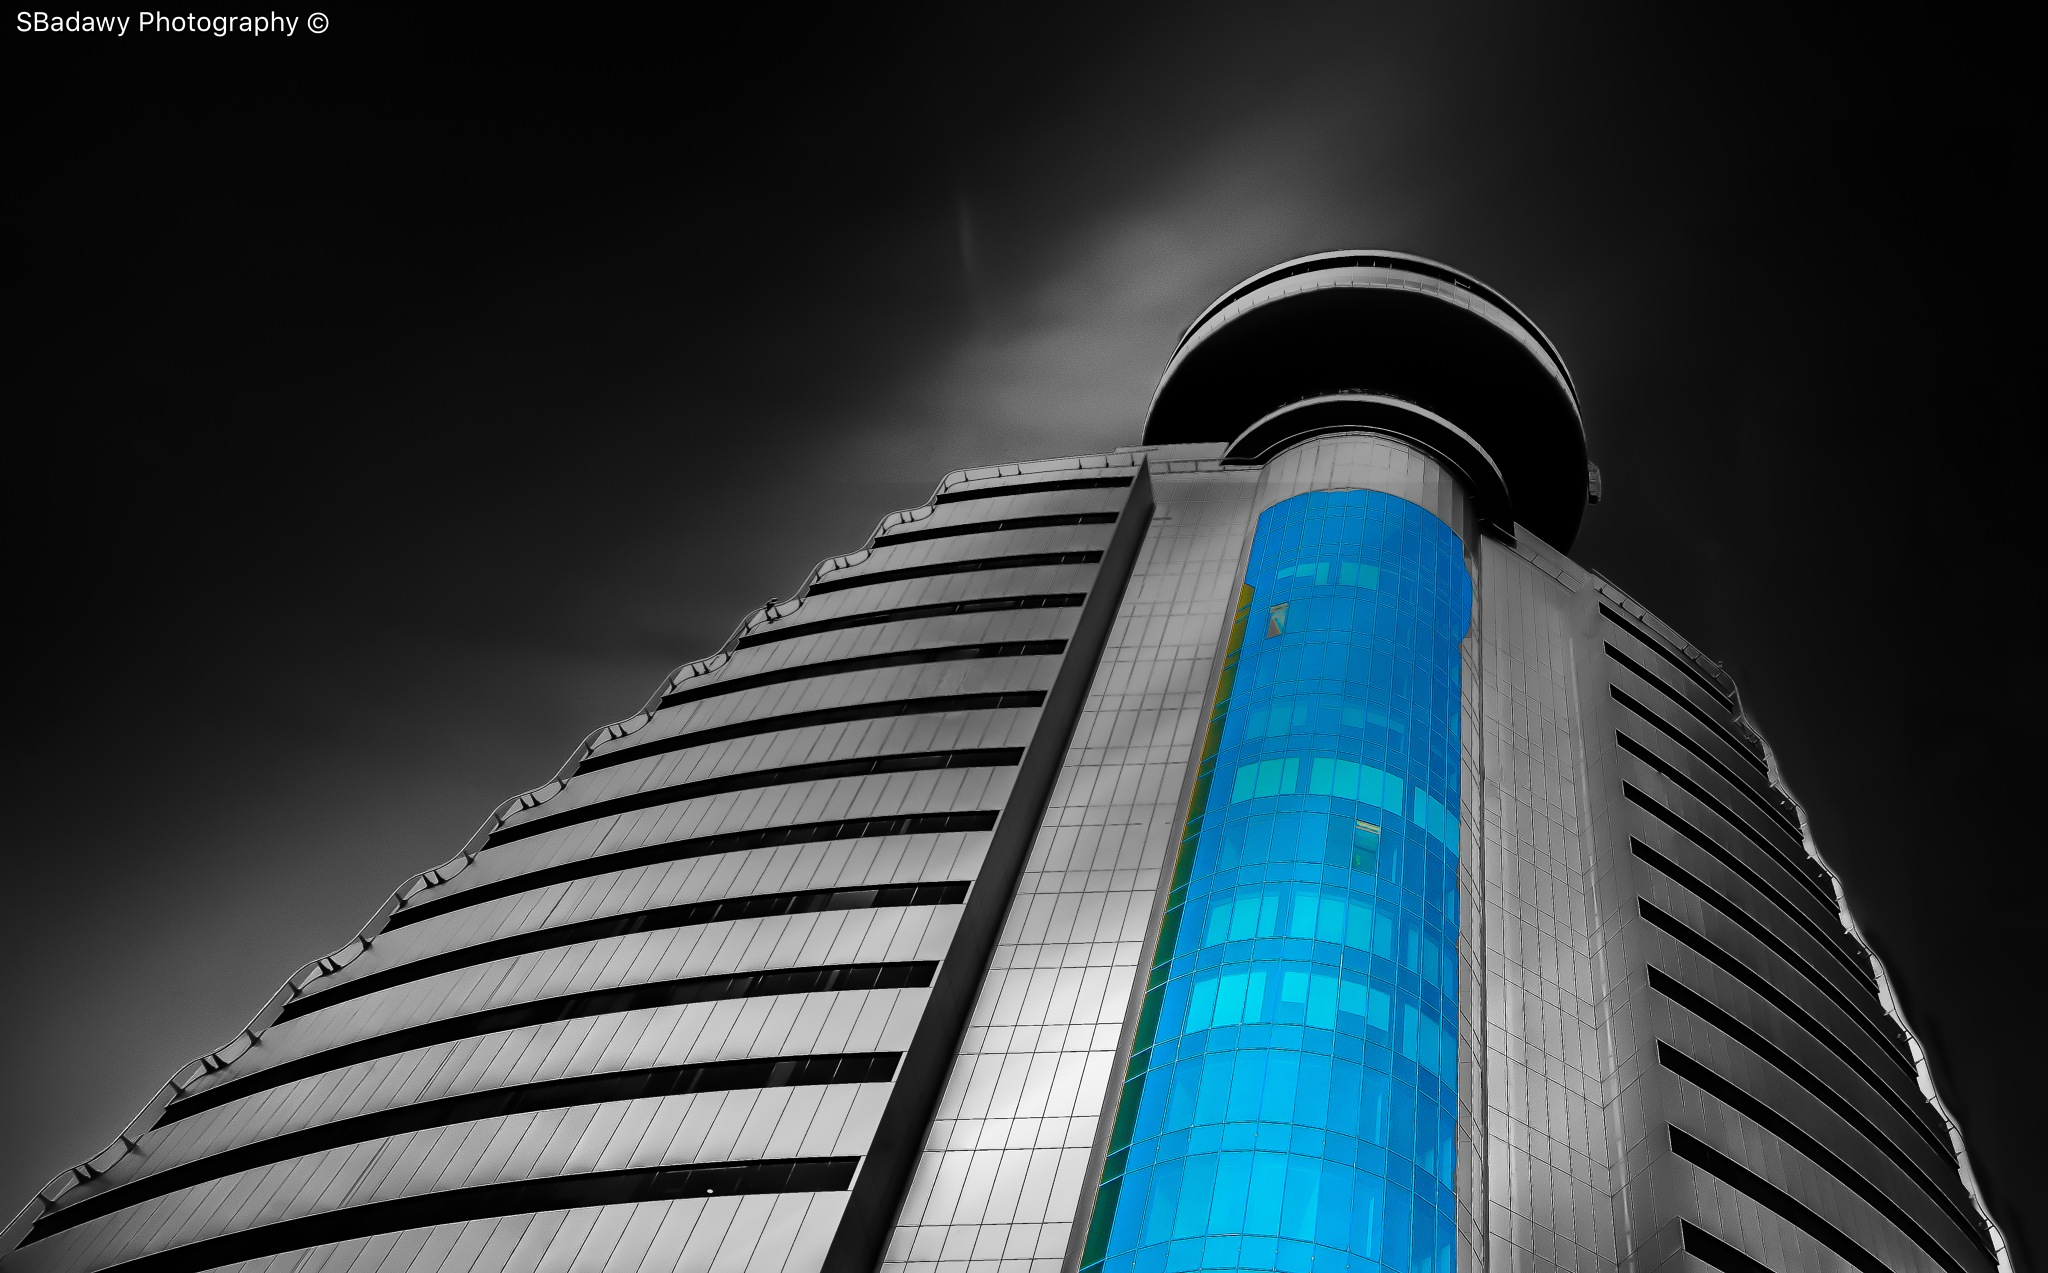 Bahrain Chamber Of Commerce Building  by Sherif Badawy